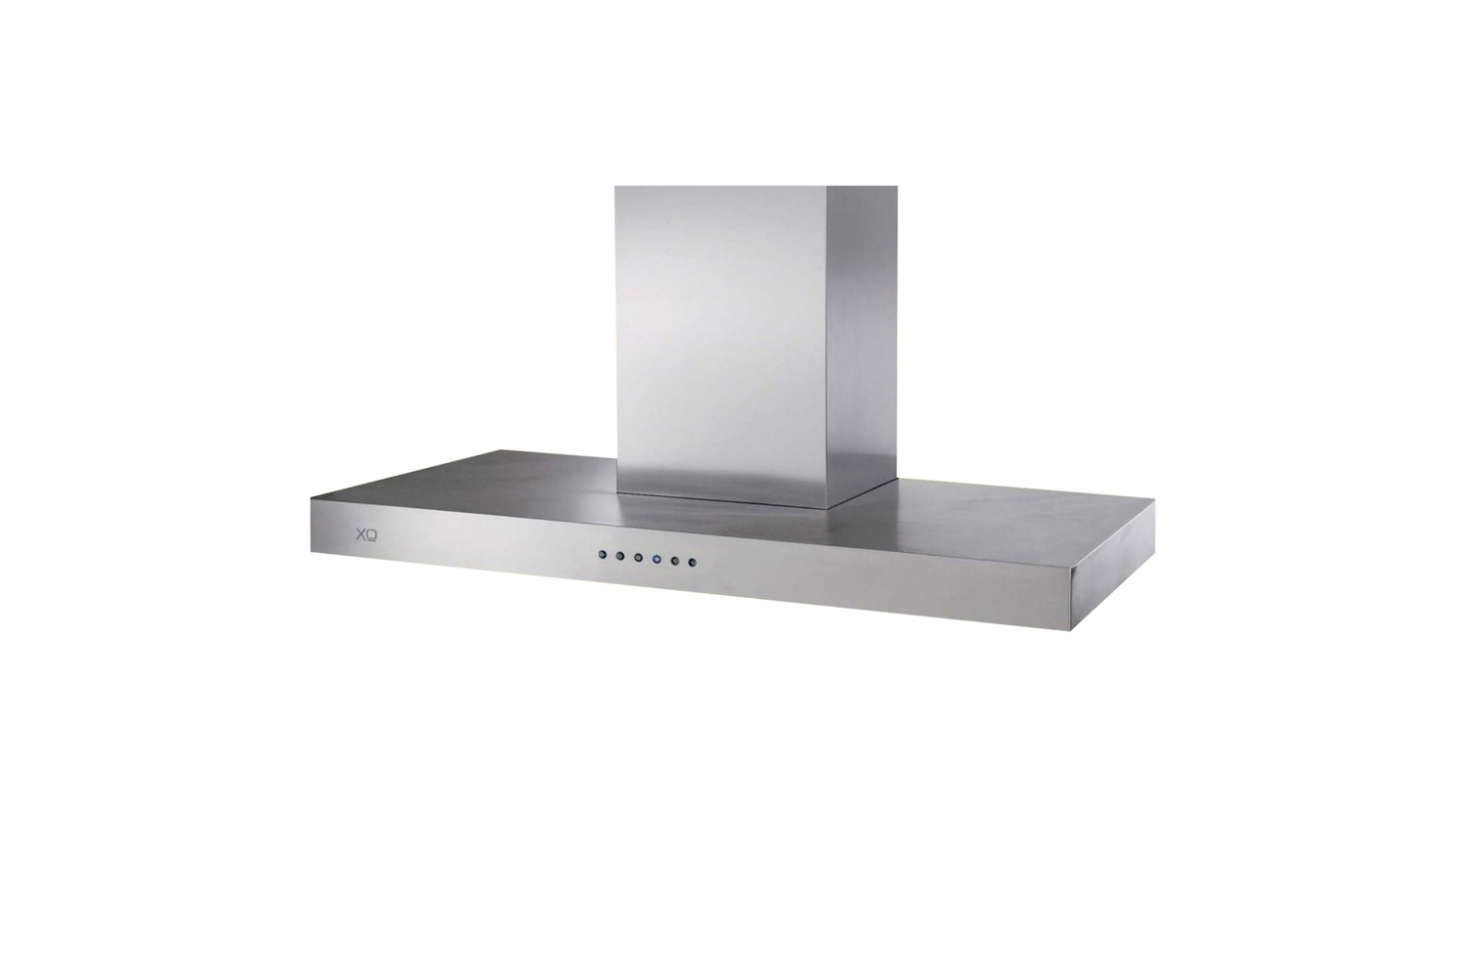 The XO Low Profile Range Hood Island Mount Chimney in stainless steel has a 600 CFM motor and three-speed blower; $src=